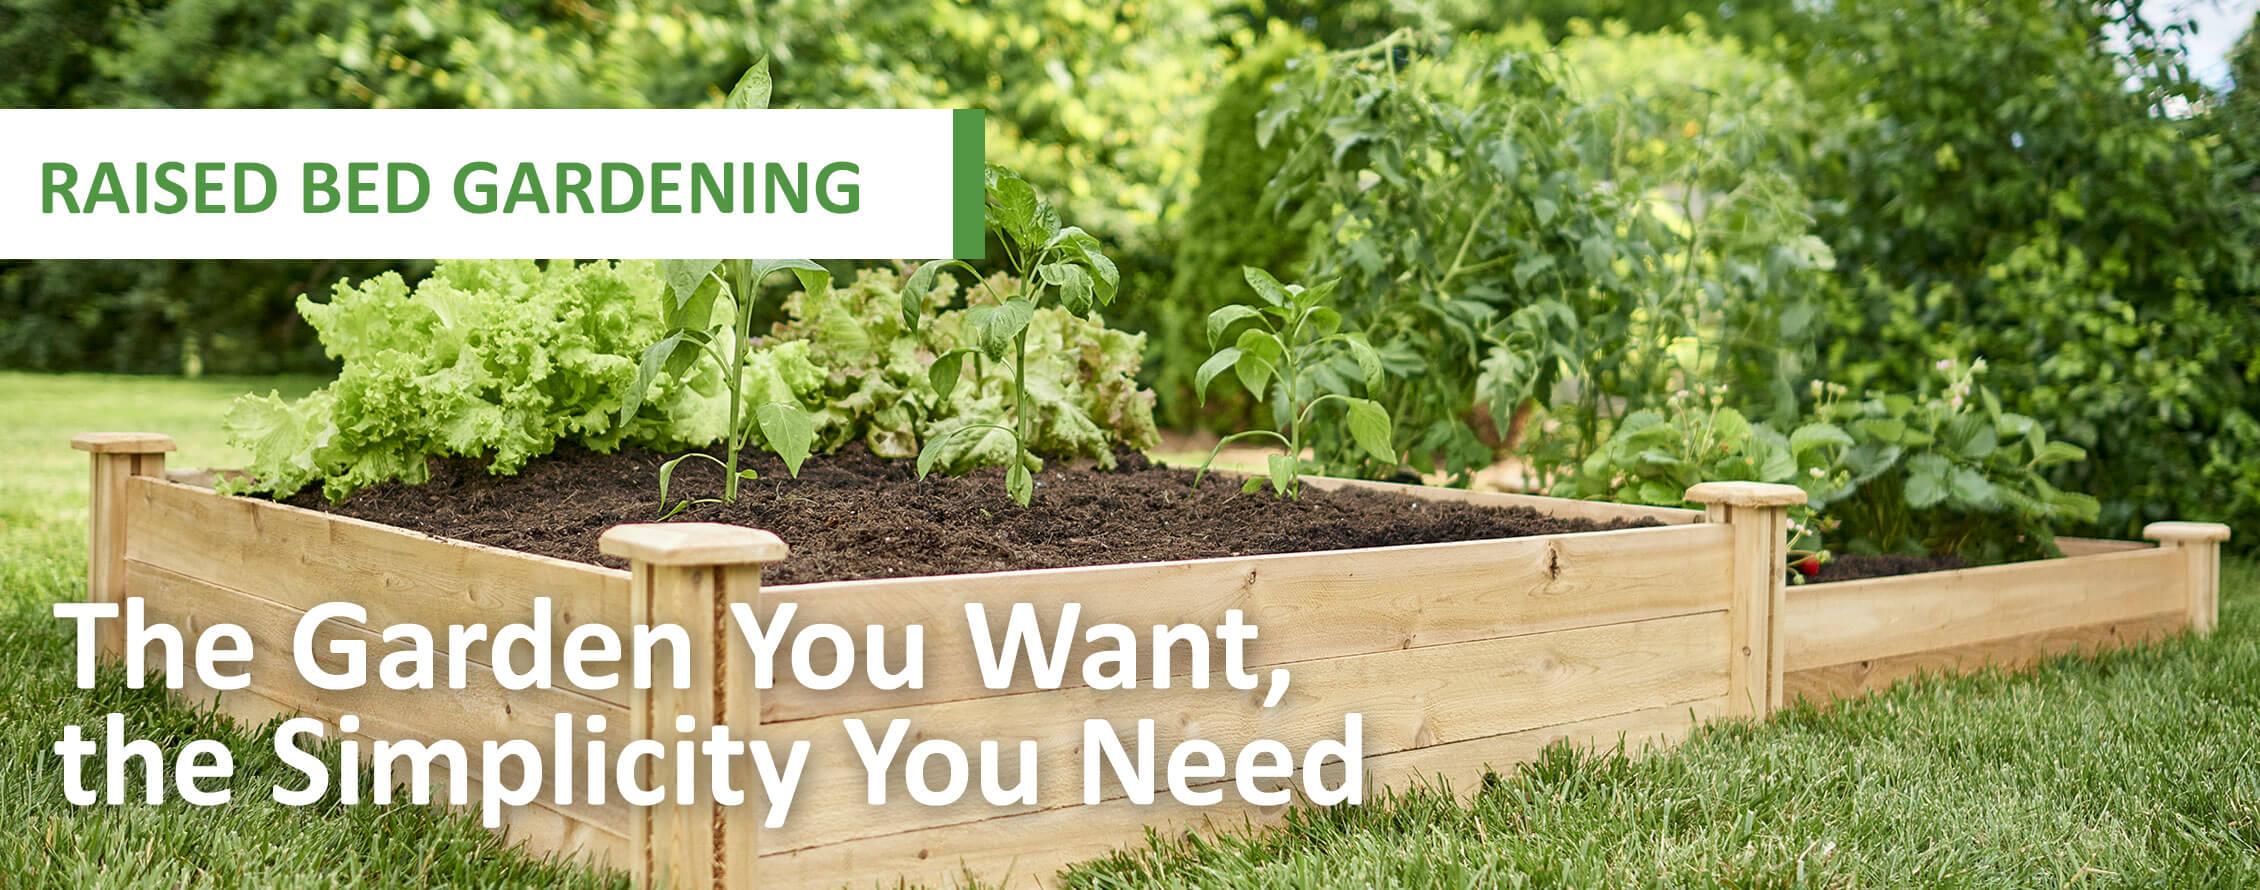 Raised Bed with The Garden you want and the Simplicity you Need.